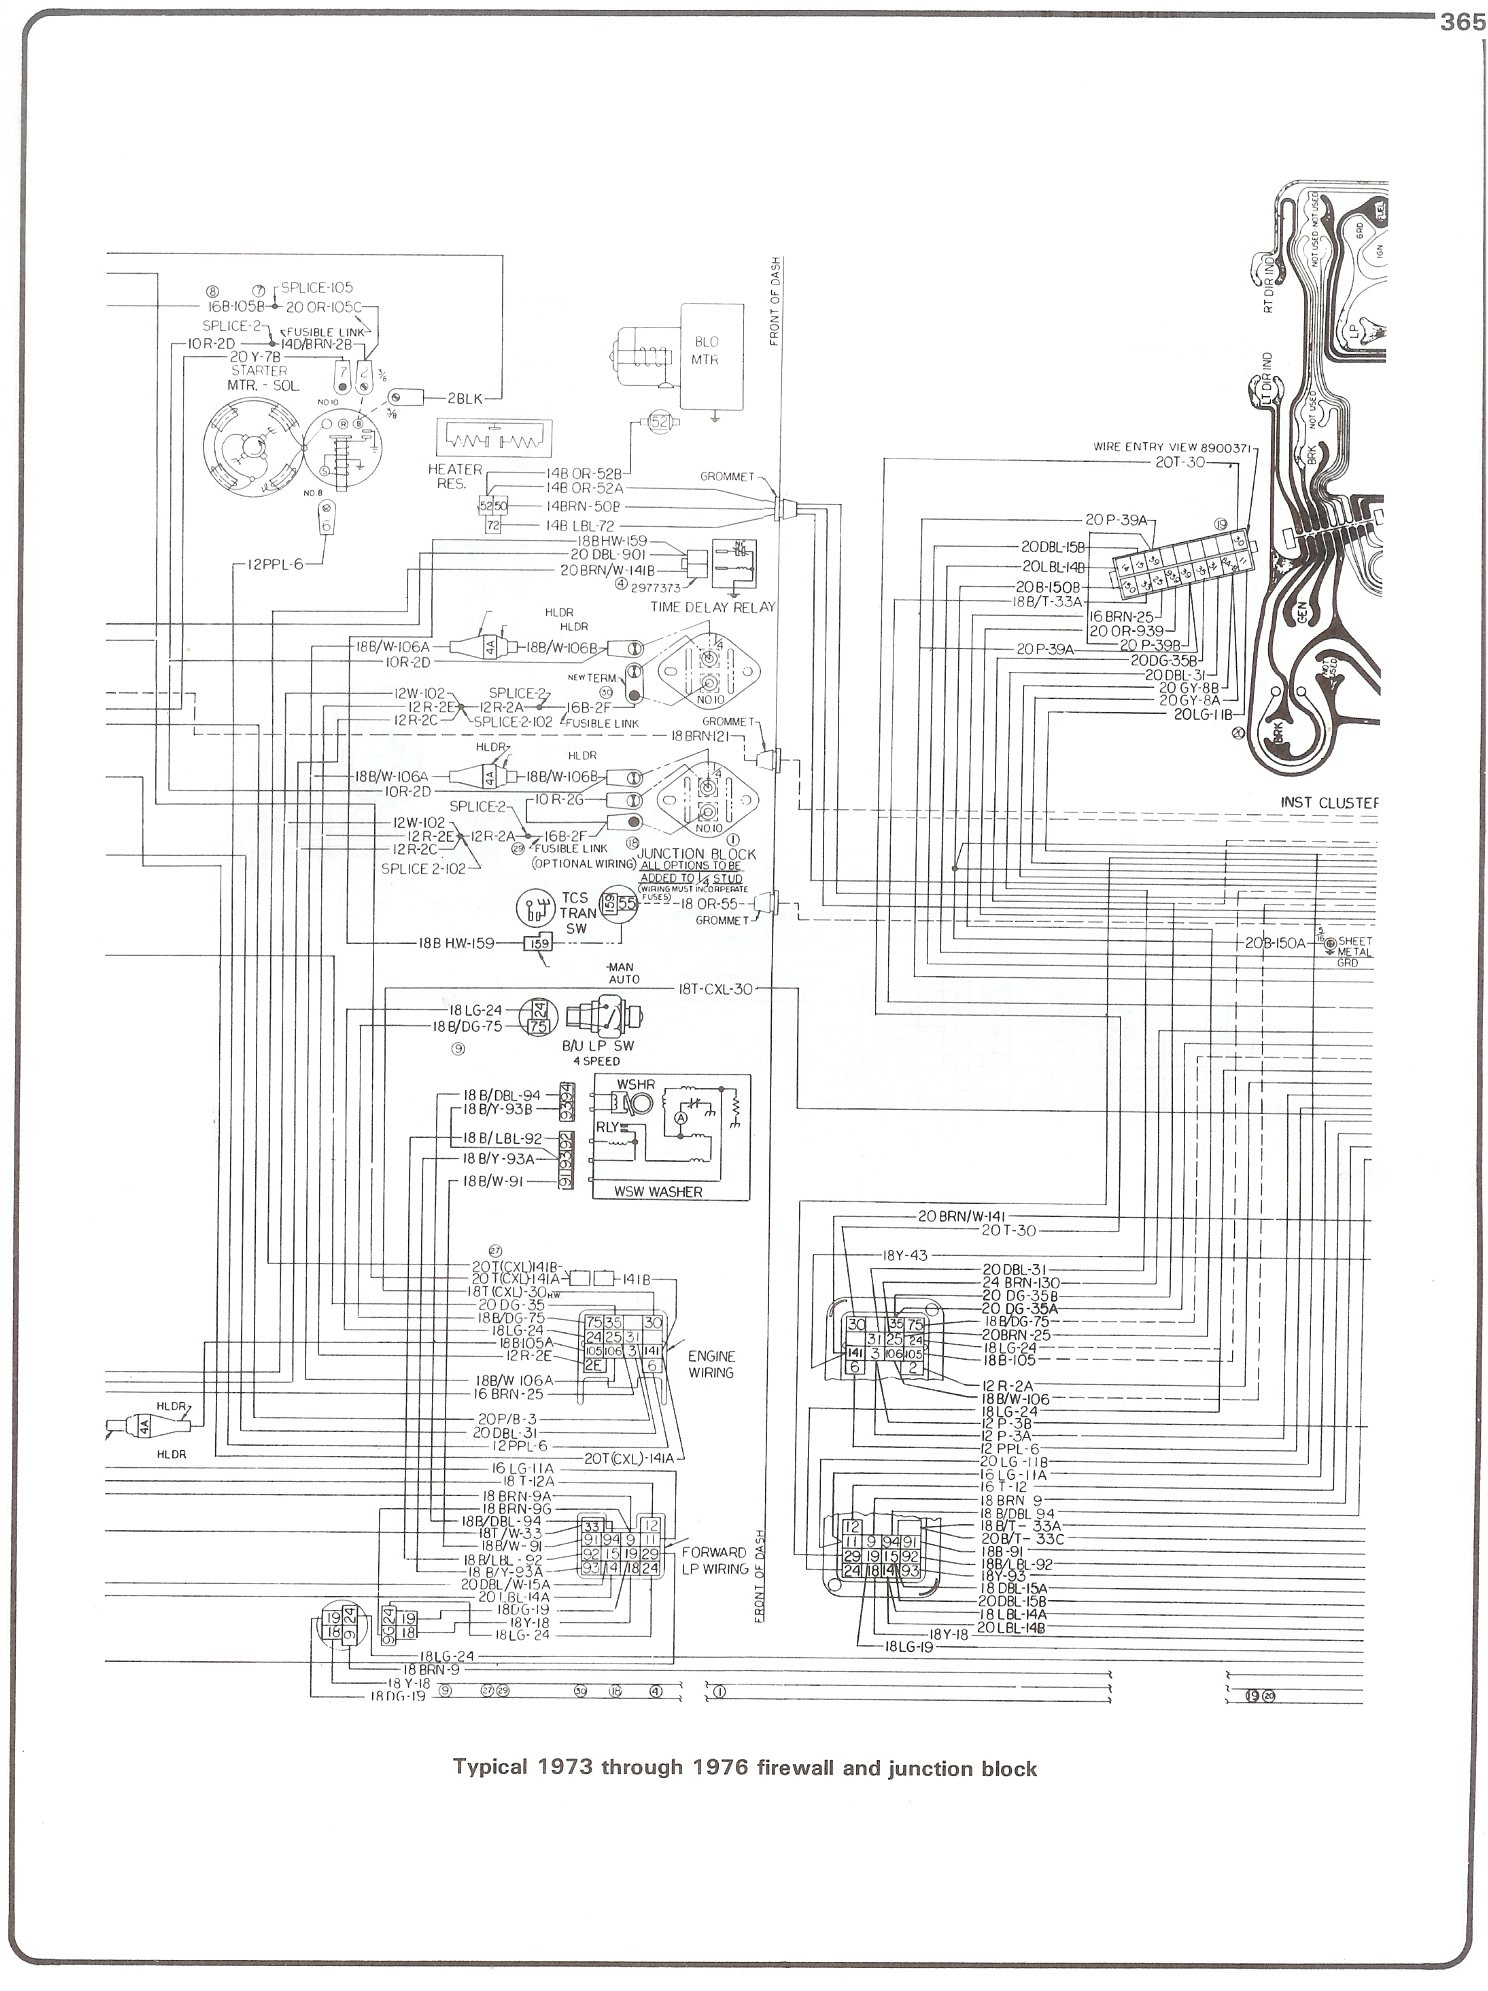 73 76_firewall_junct complete 73 87 wiring diagrams 1996 C1500 Wiring Diagram at gsmx.co